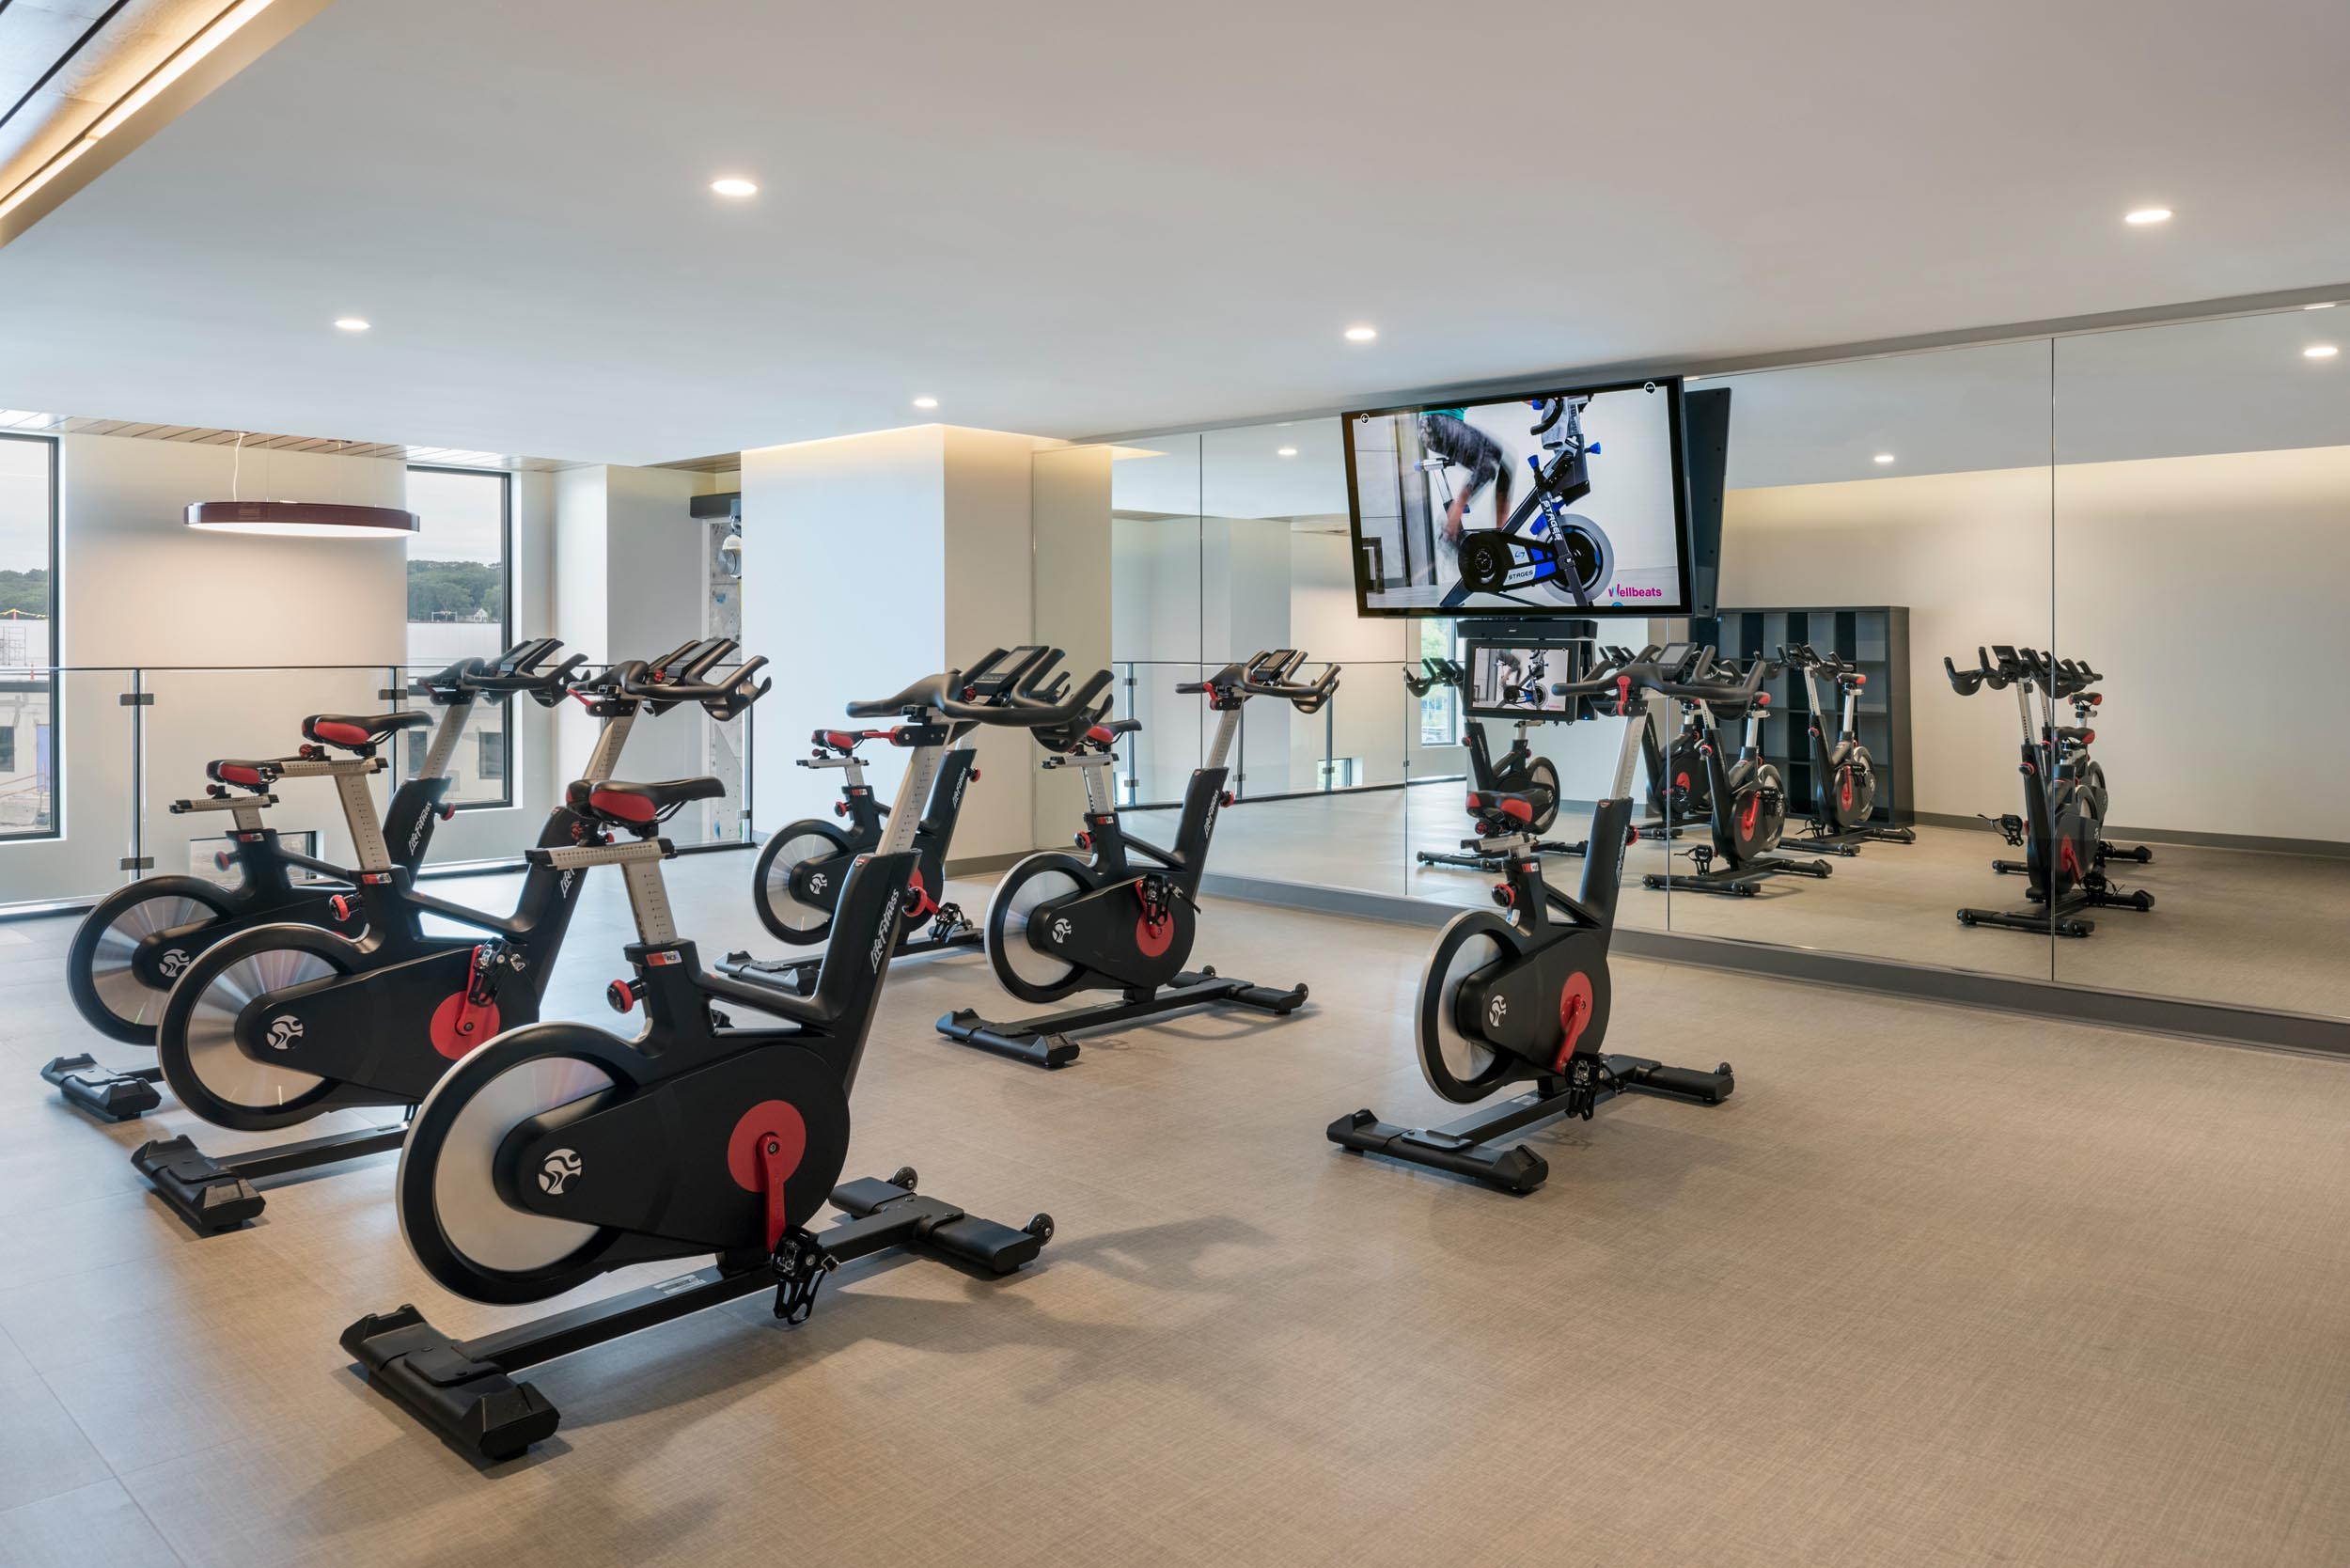 Studio in the fitness center of The Kendrick with indoor cycles